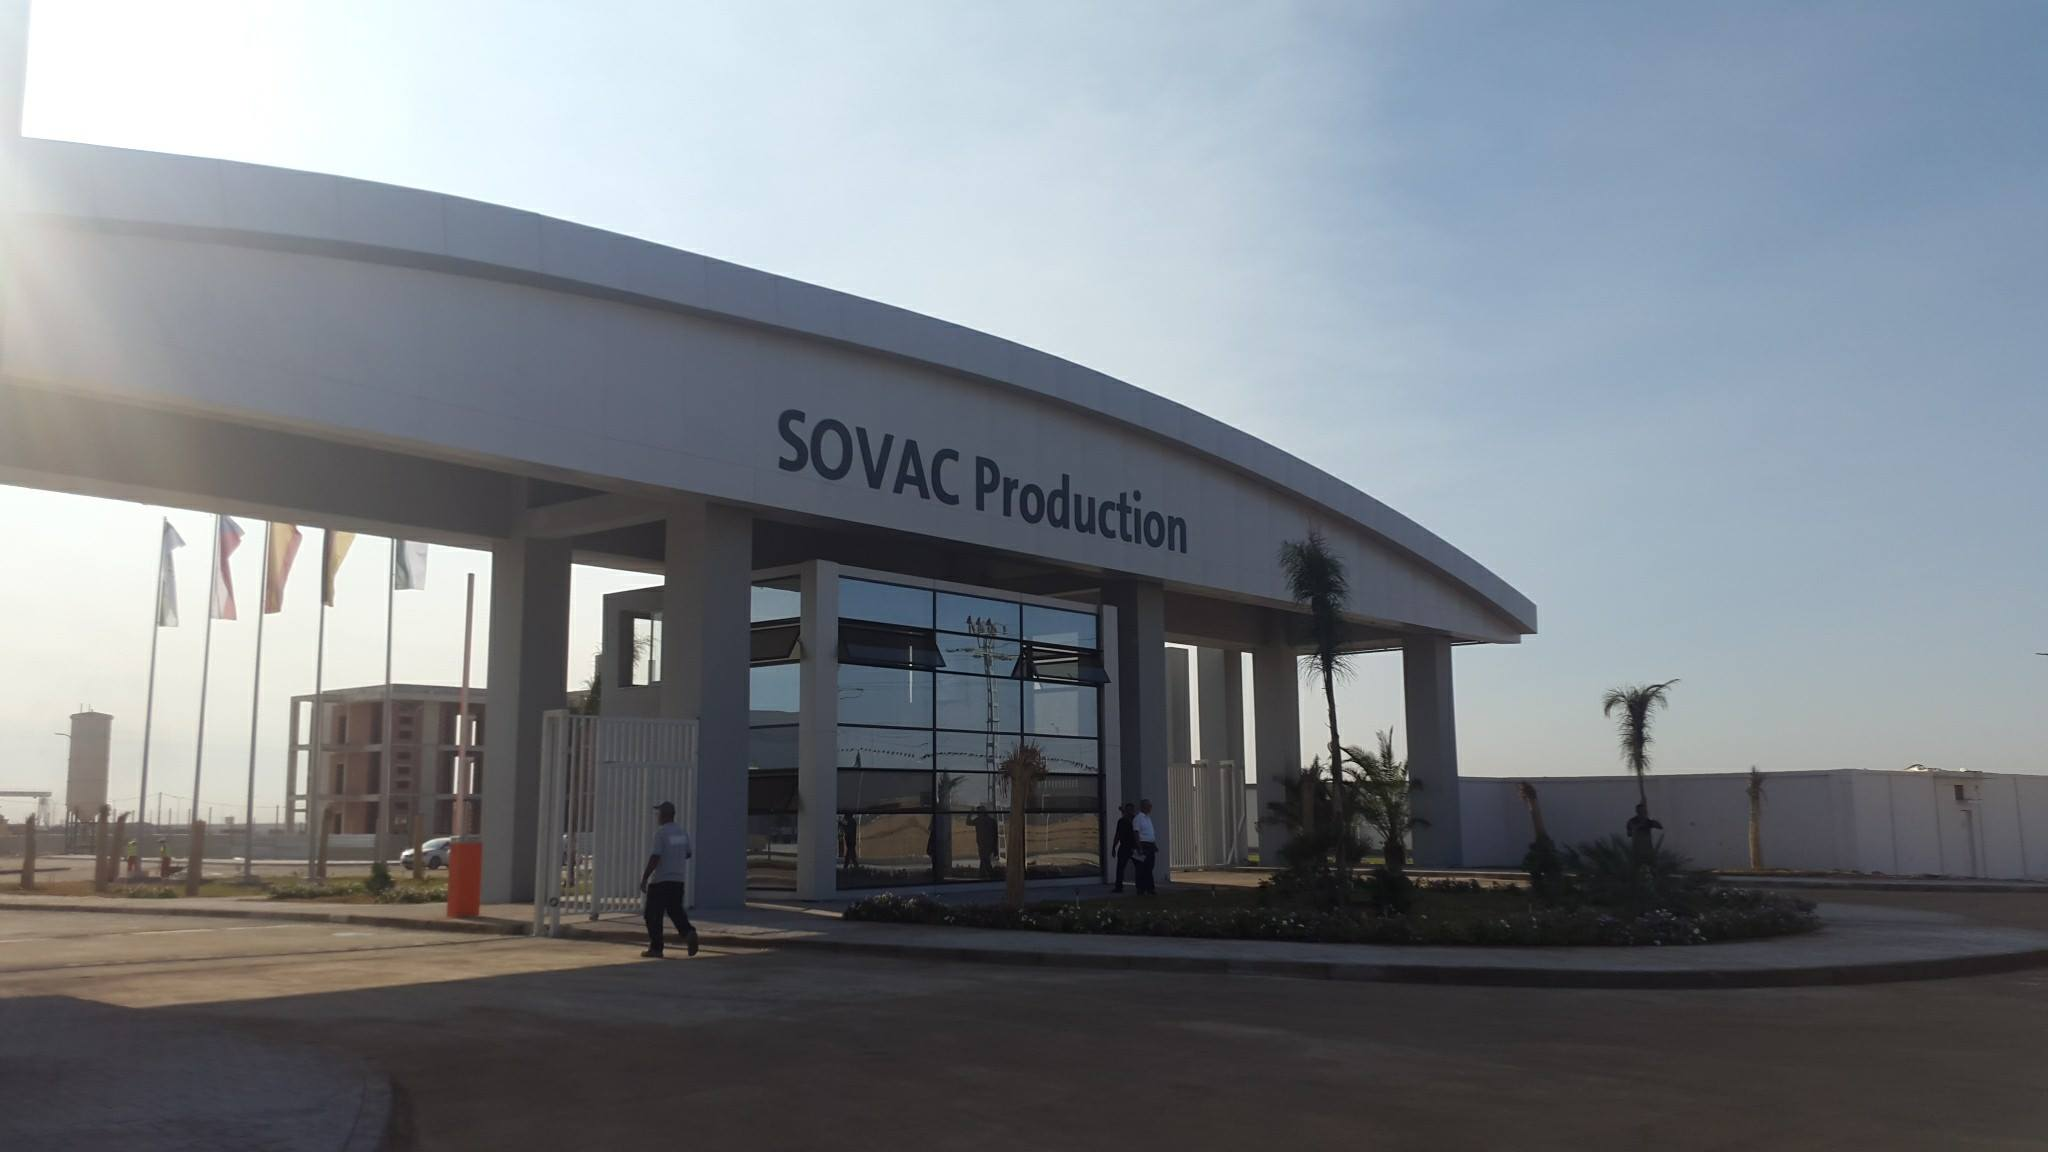 Sovac Production dément la rupture de son partenariat avec Volkswagen